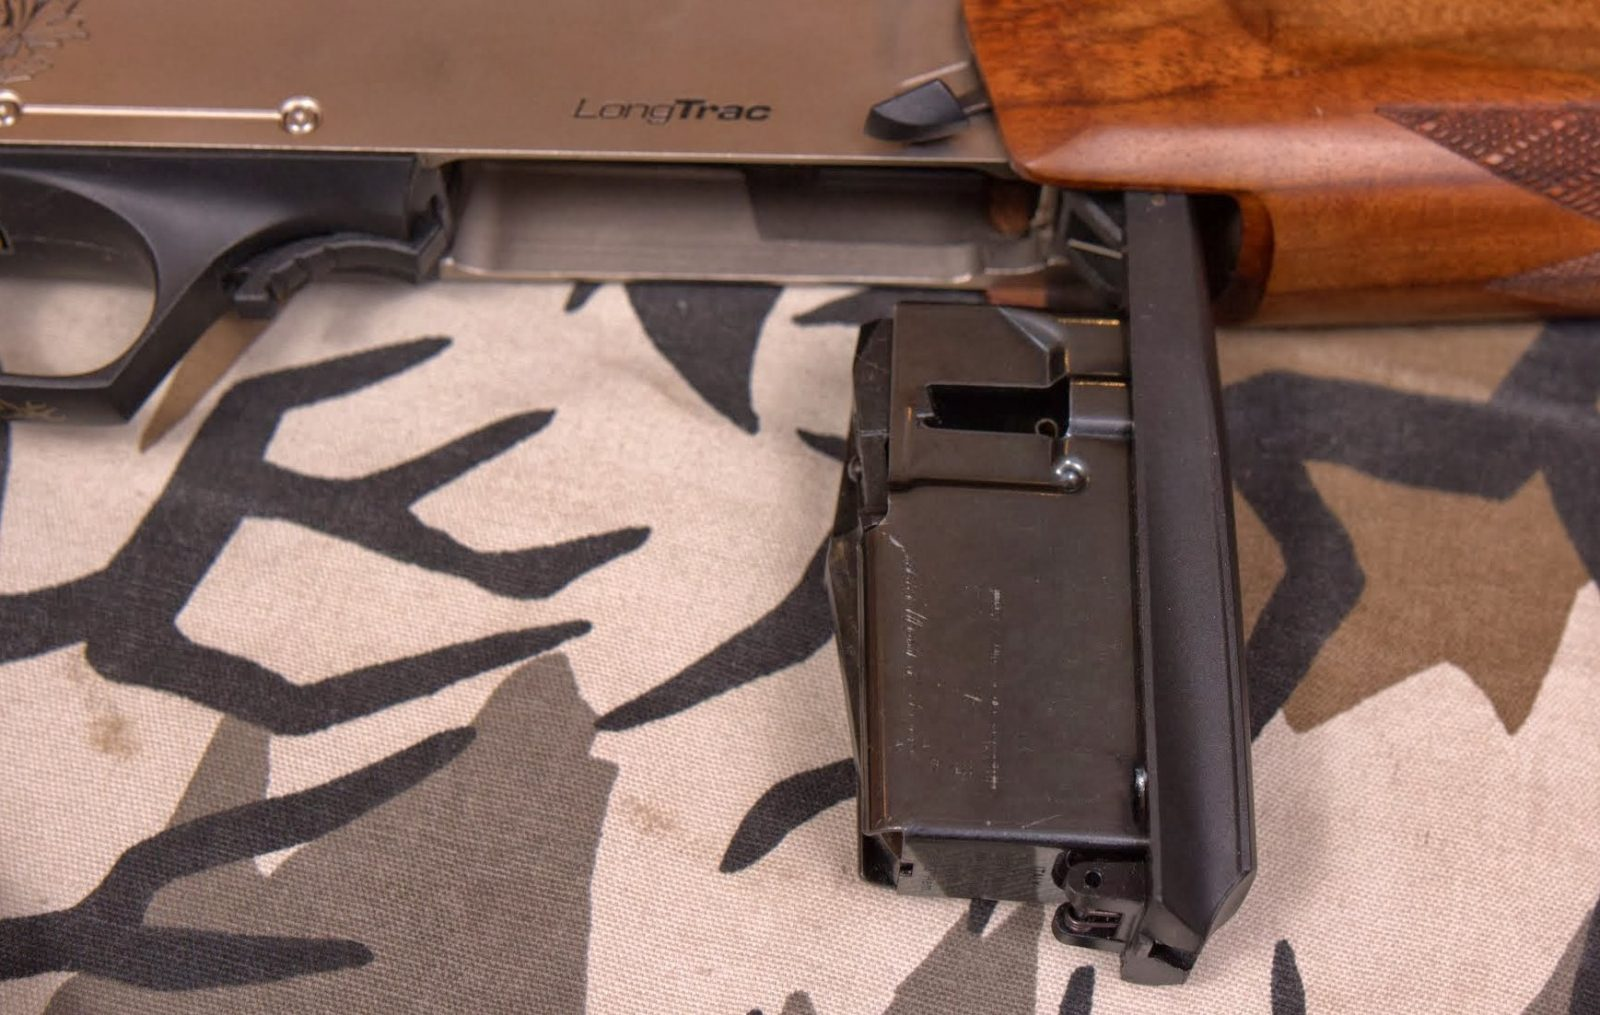 Browning Bar Longtrac Review The Hunting Gear Guy